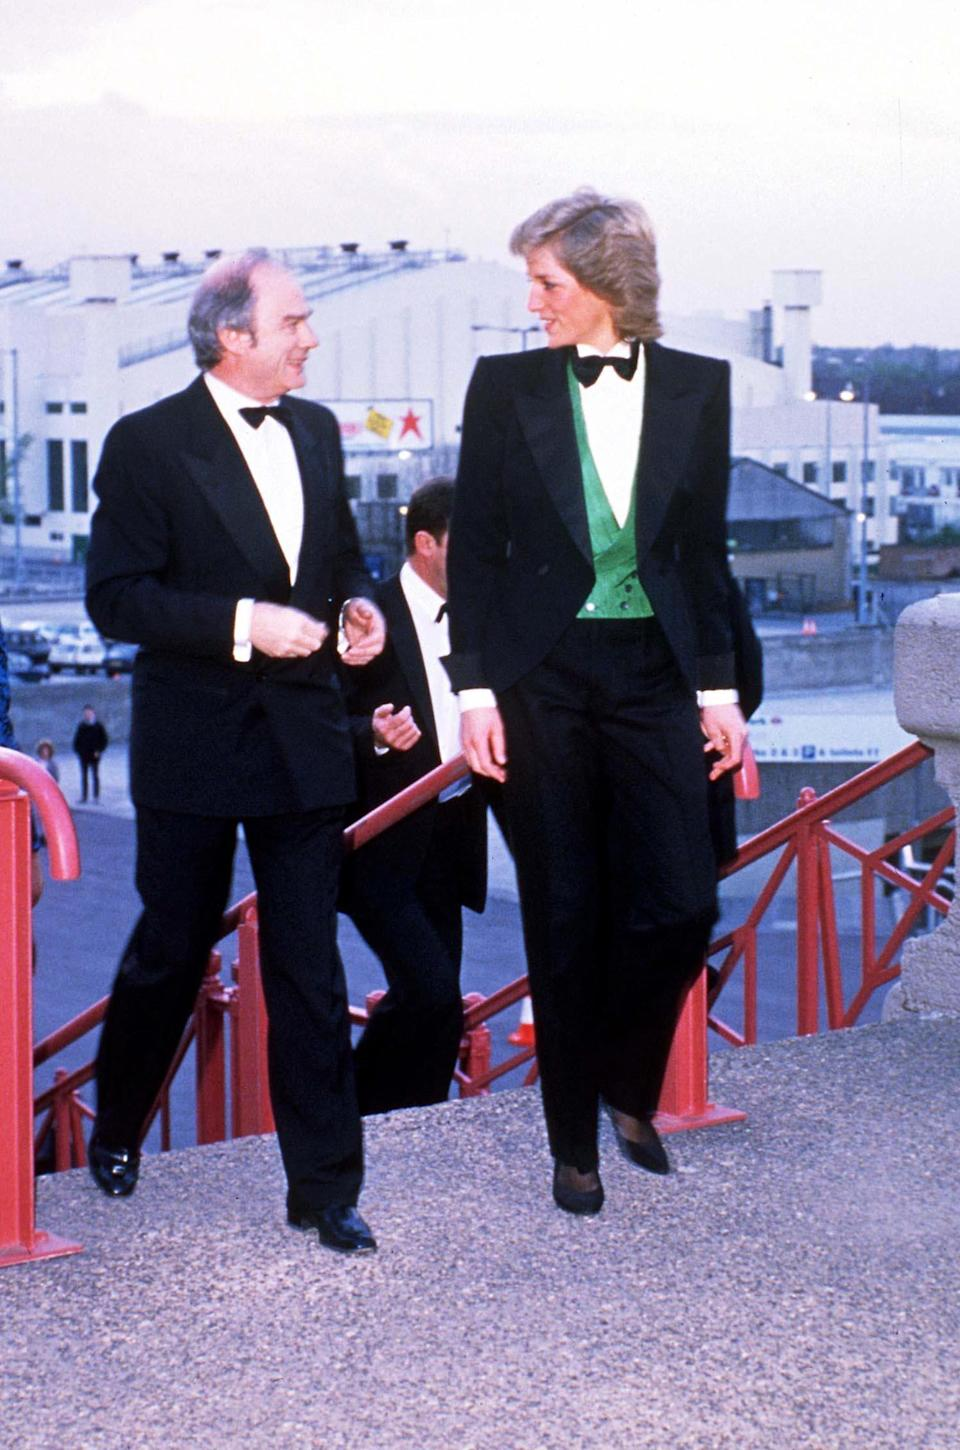 Princess Diana in a tuxedo at Wembley Stadium in 1988. (Photo: Shutterstock)